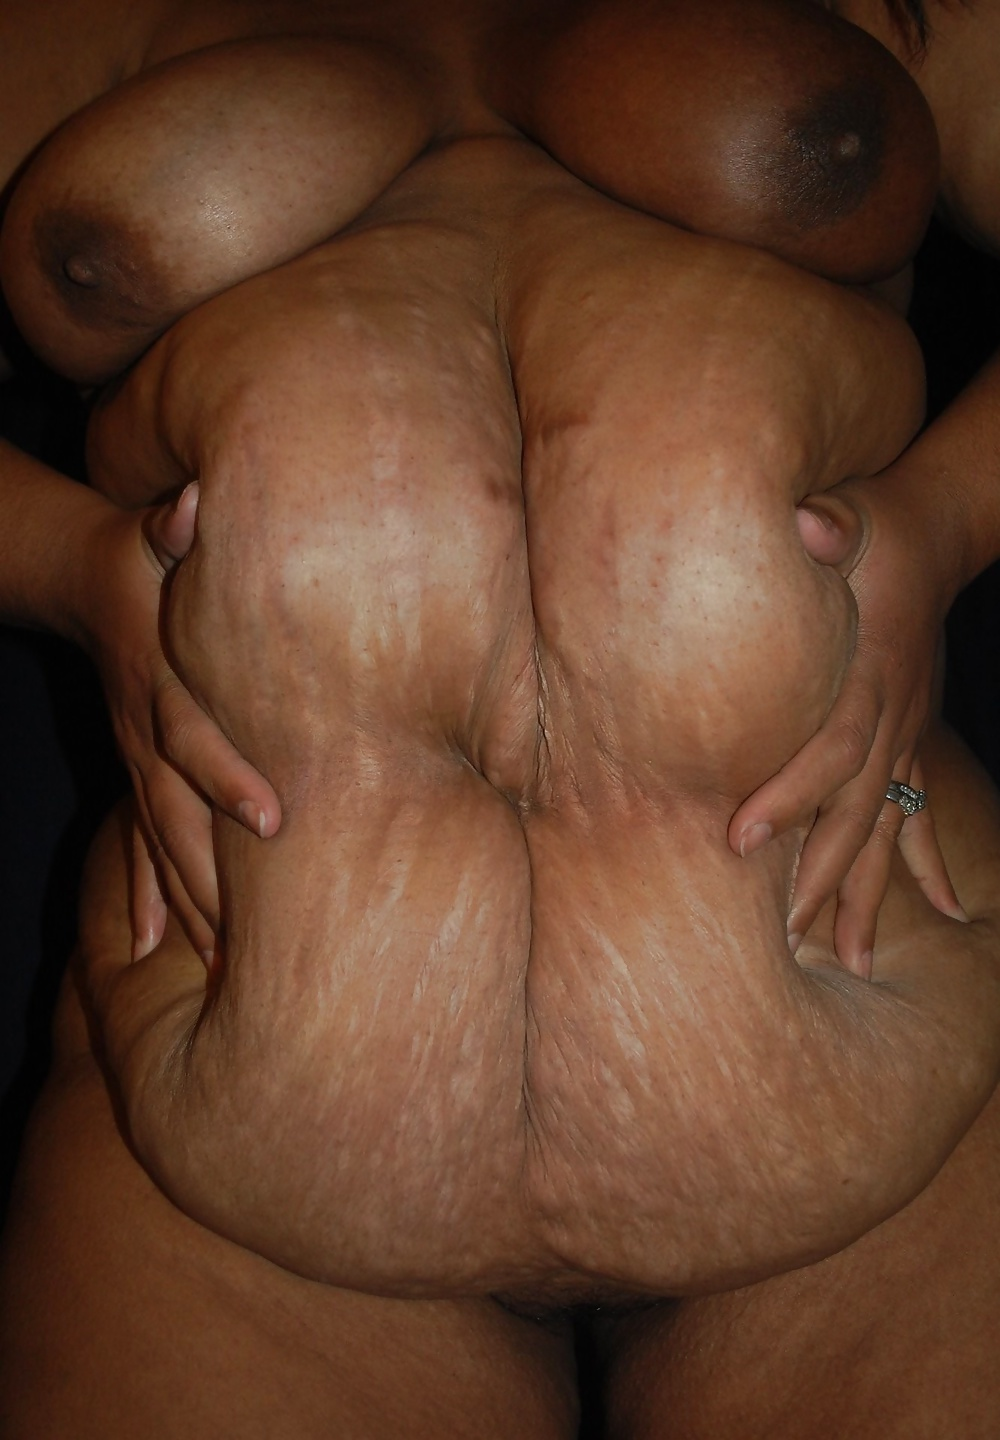 Nude girls with stretch marks